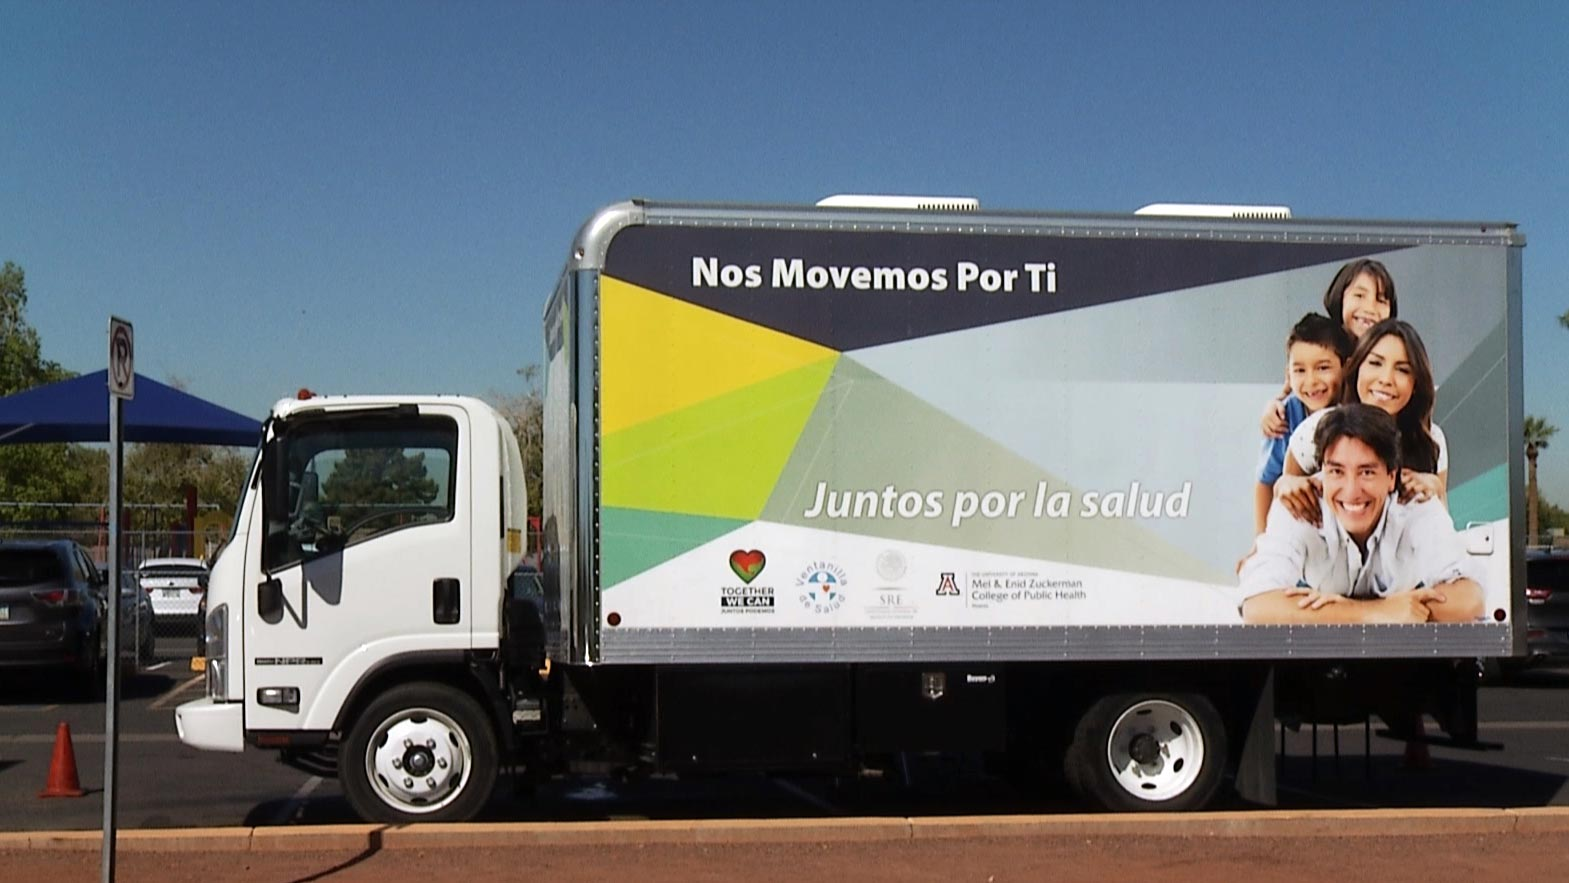 A mobile health clinic set up outside an elementary school in Phoenix. Funding for the clinics comes from the Mexican government. They operate in several states, including Arizona.